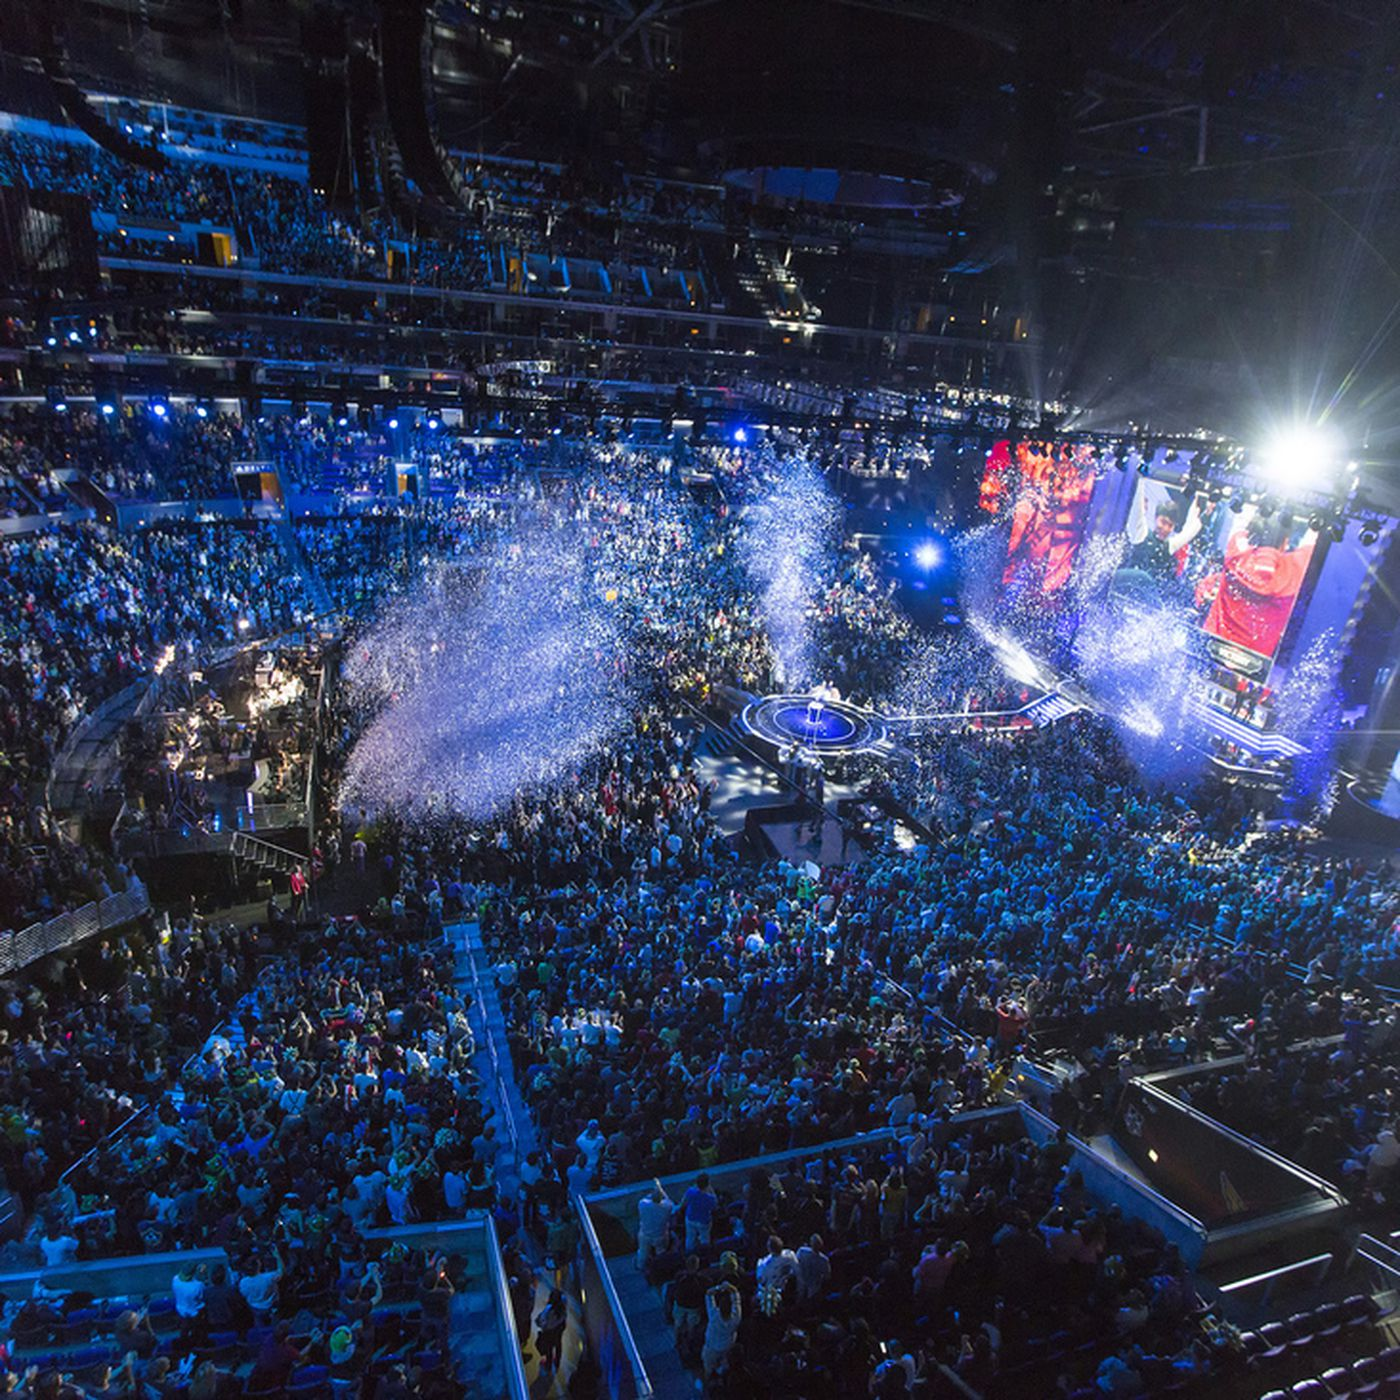 League Of Legends Esports Finals Watched By 32 Million People